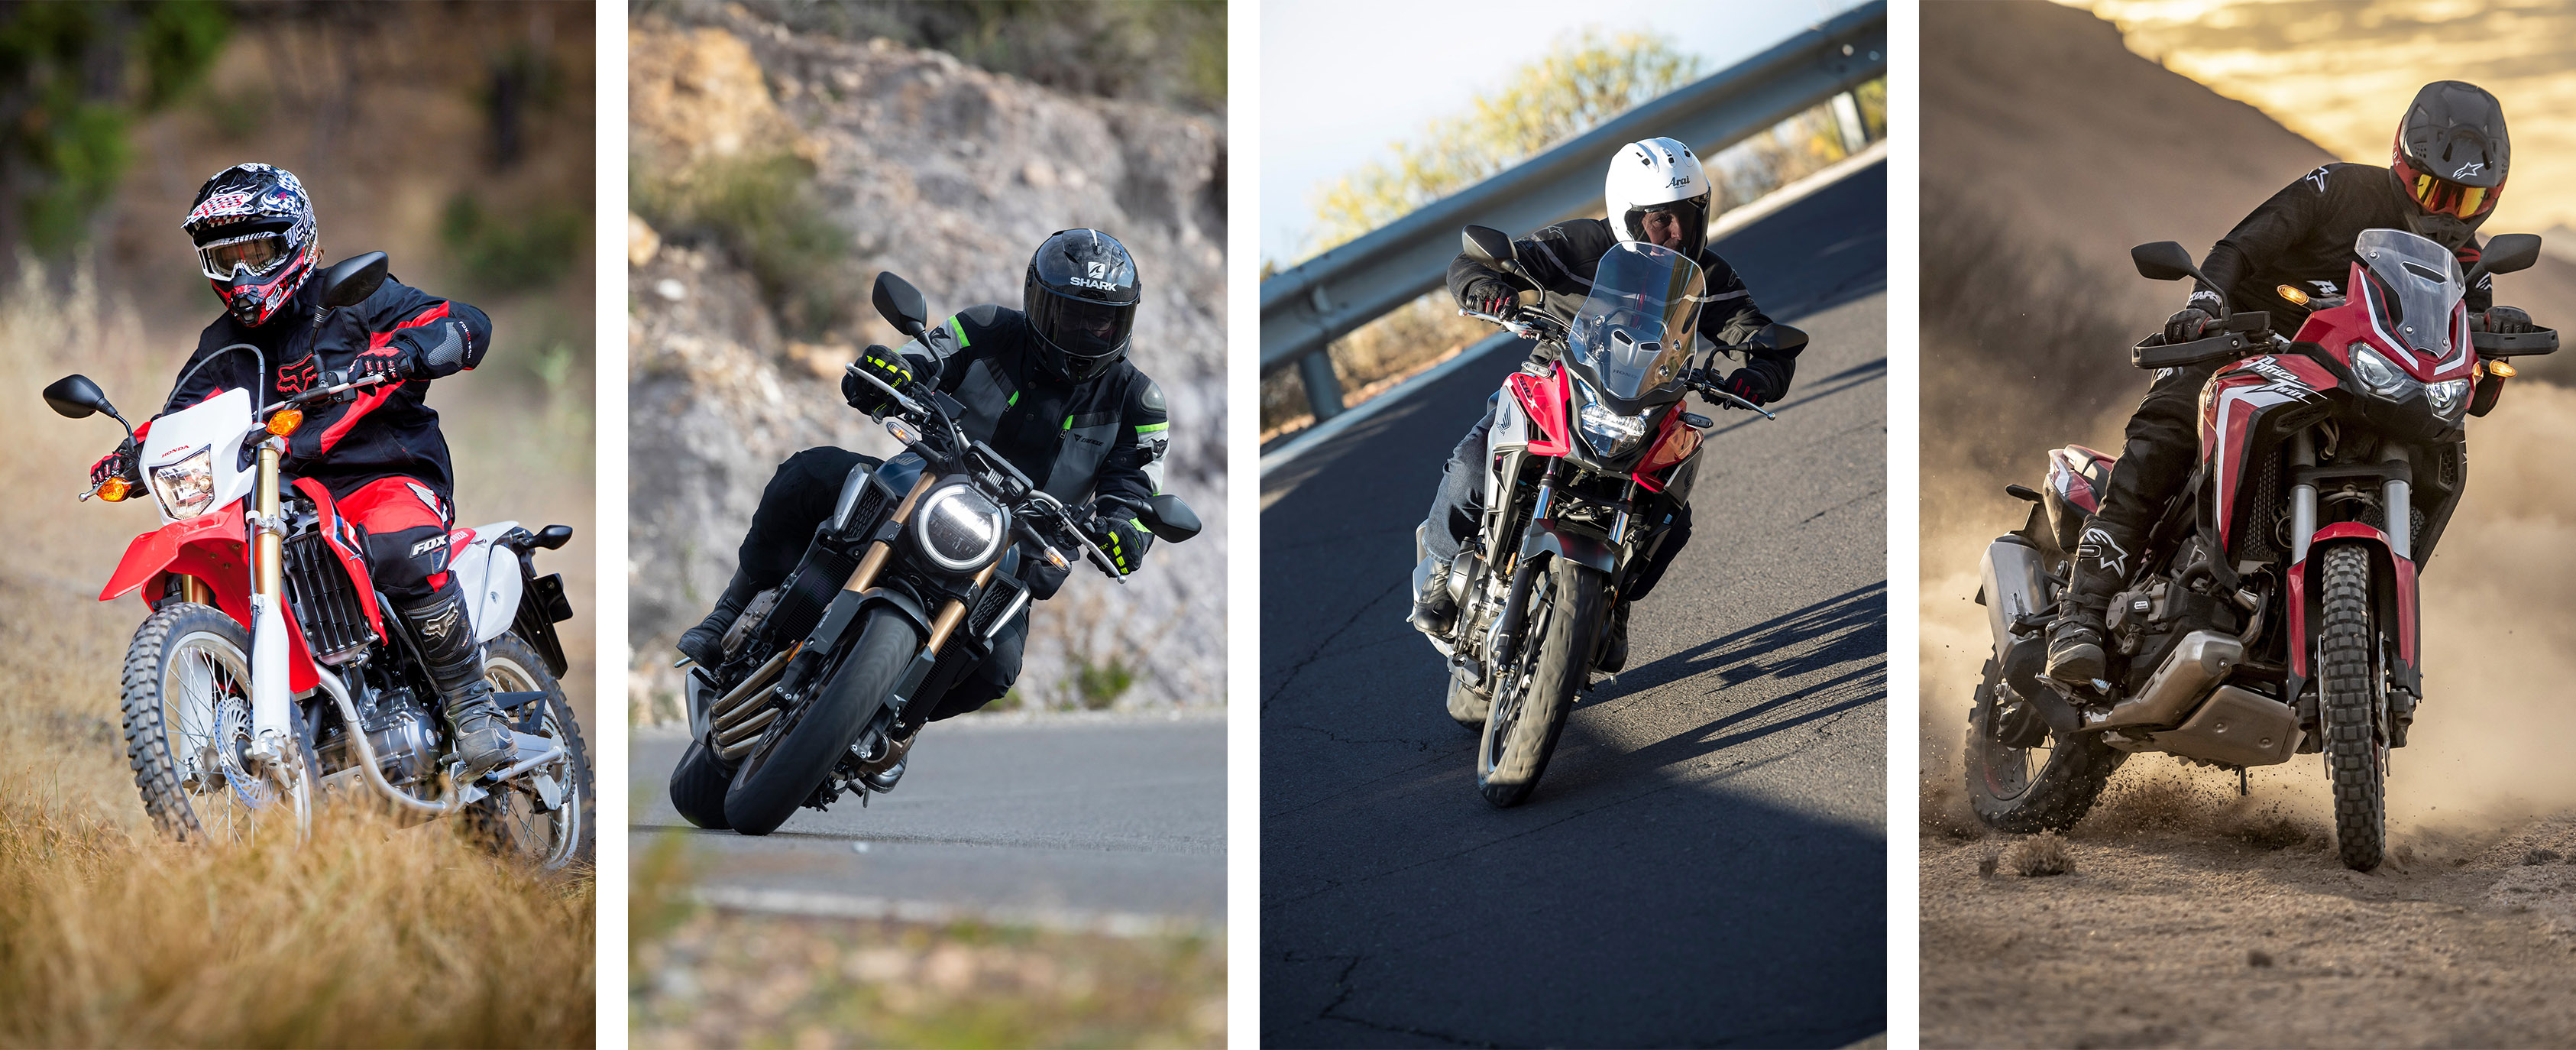 Get up to £1,000 worth of FREE clothing with your new Honda Motorcycle